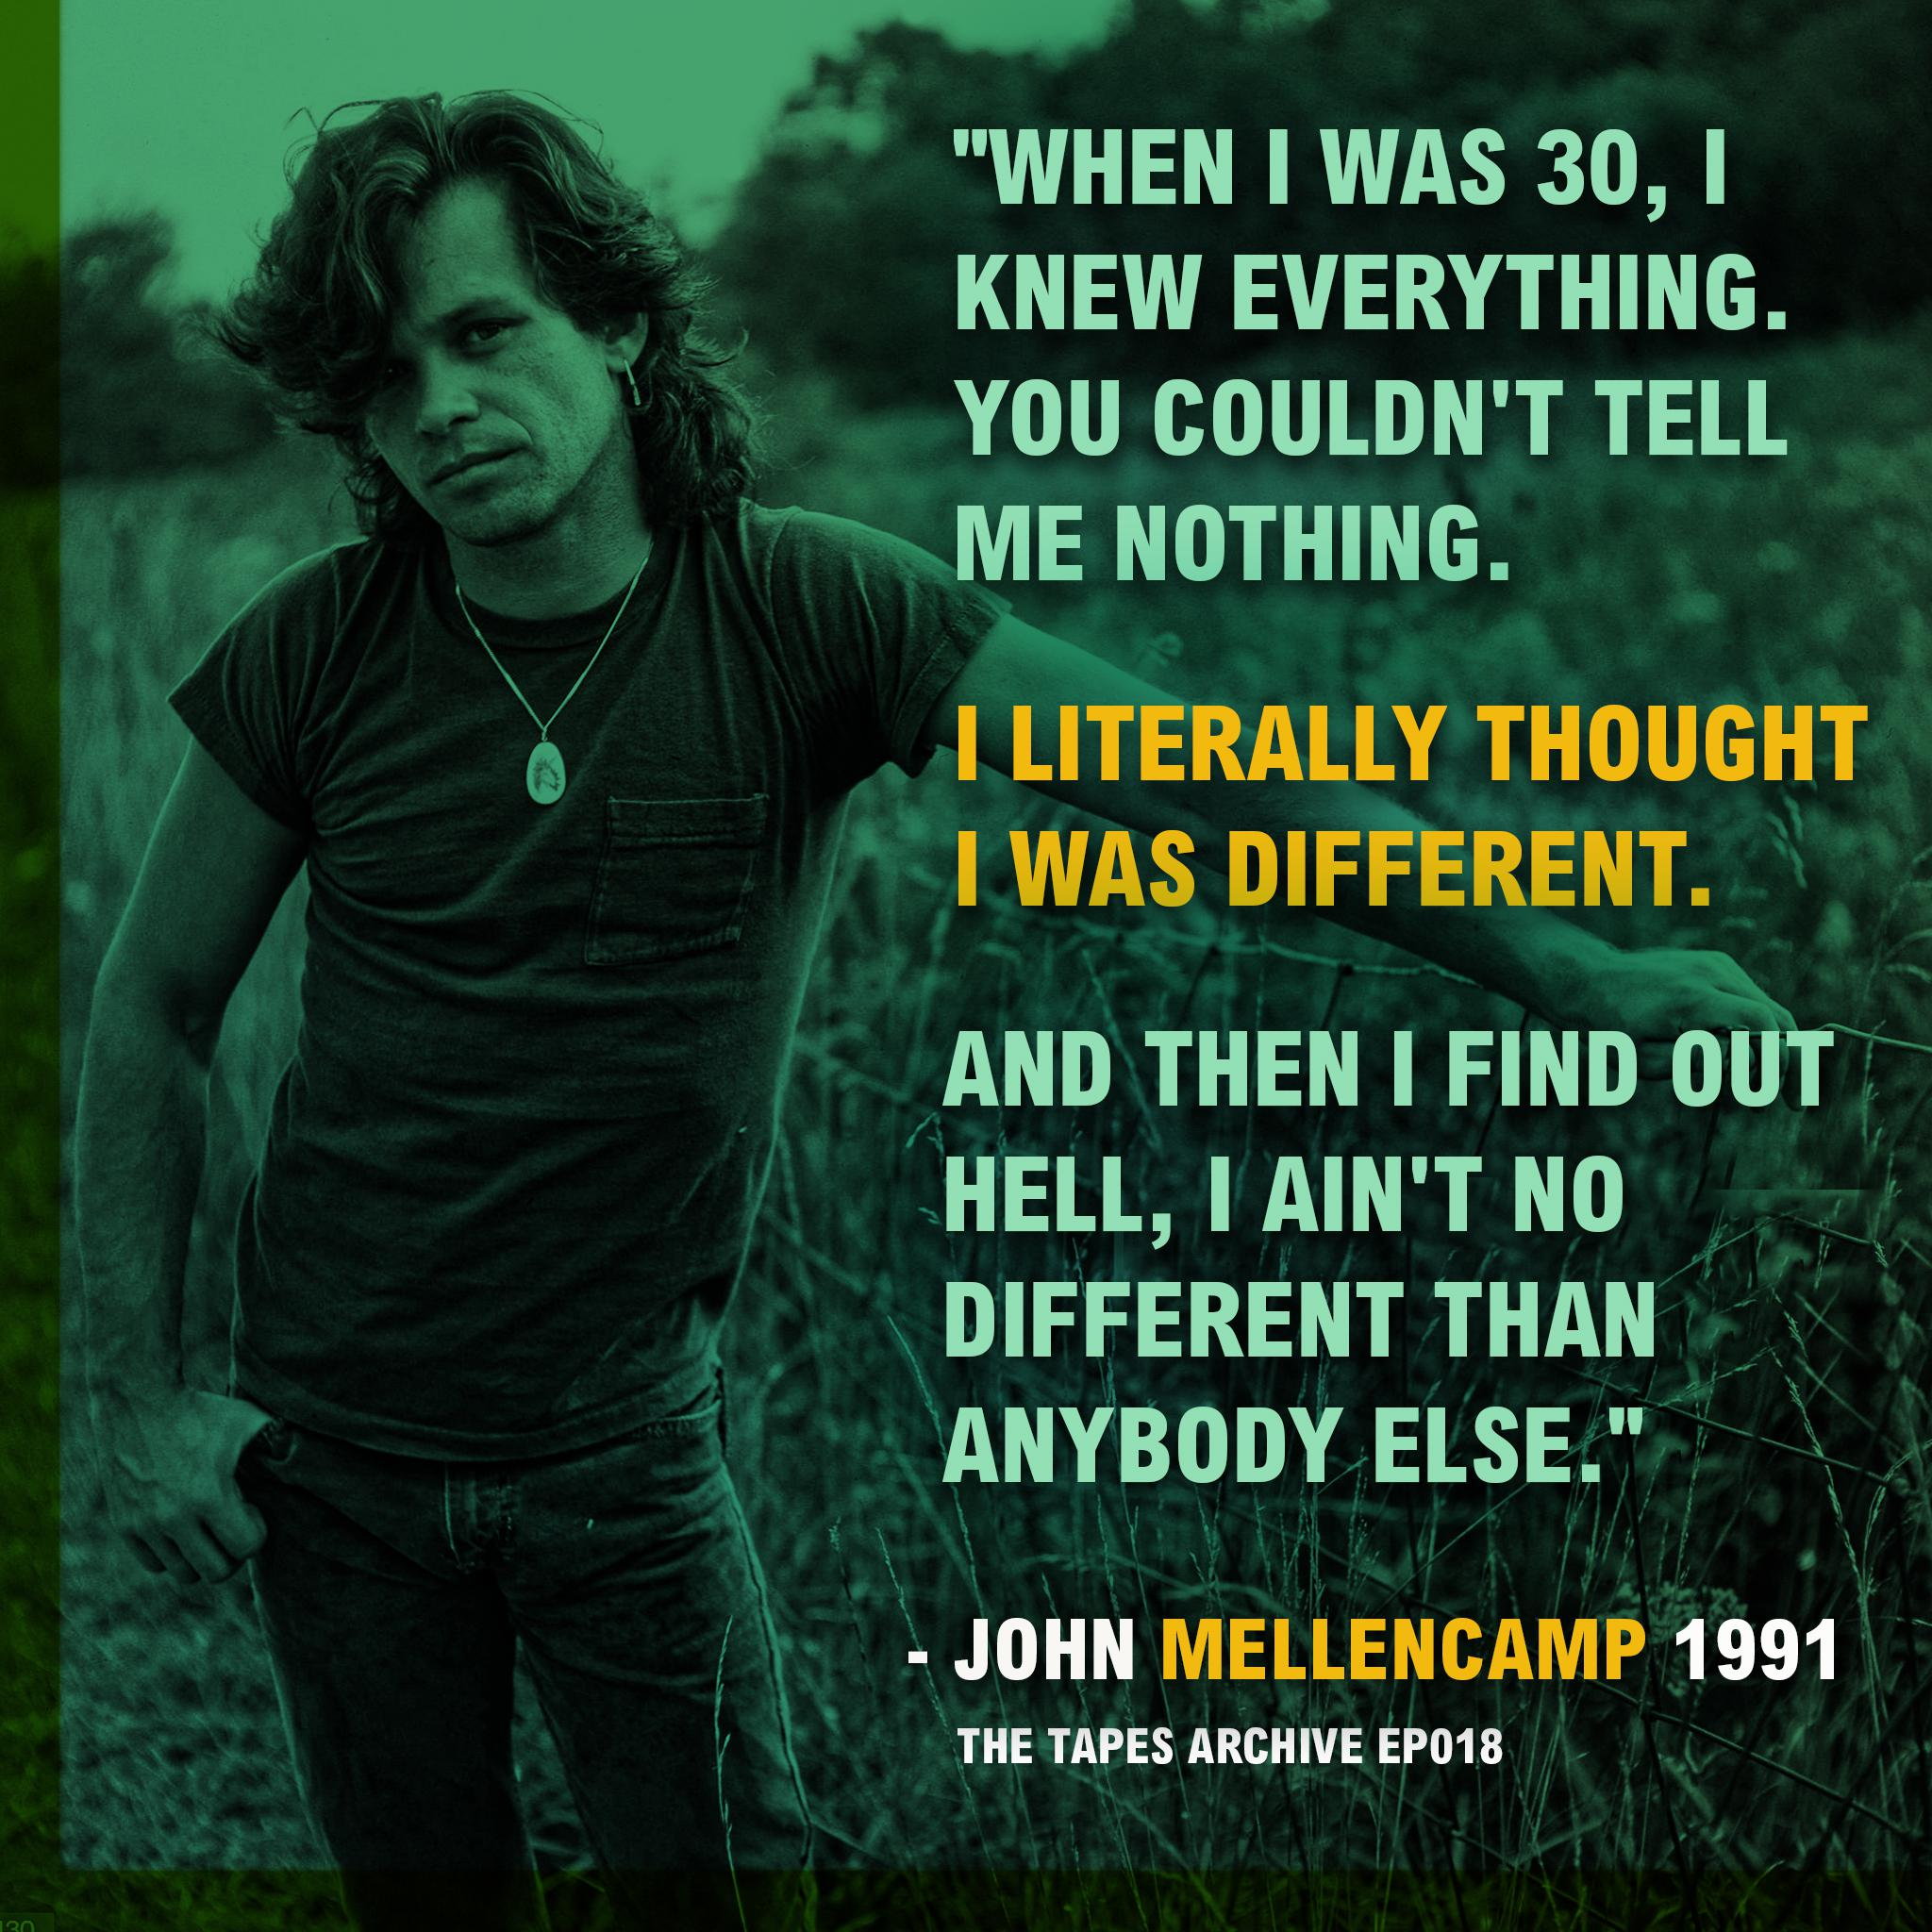 """When I was 30, I knew everything. You couldn't tell me nothing. I literally thought I was different. And then I find out hell, I ain't no different than anybody else."" John Mellencamp 1991 [2048 x 2048]"